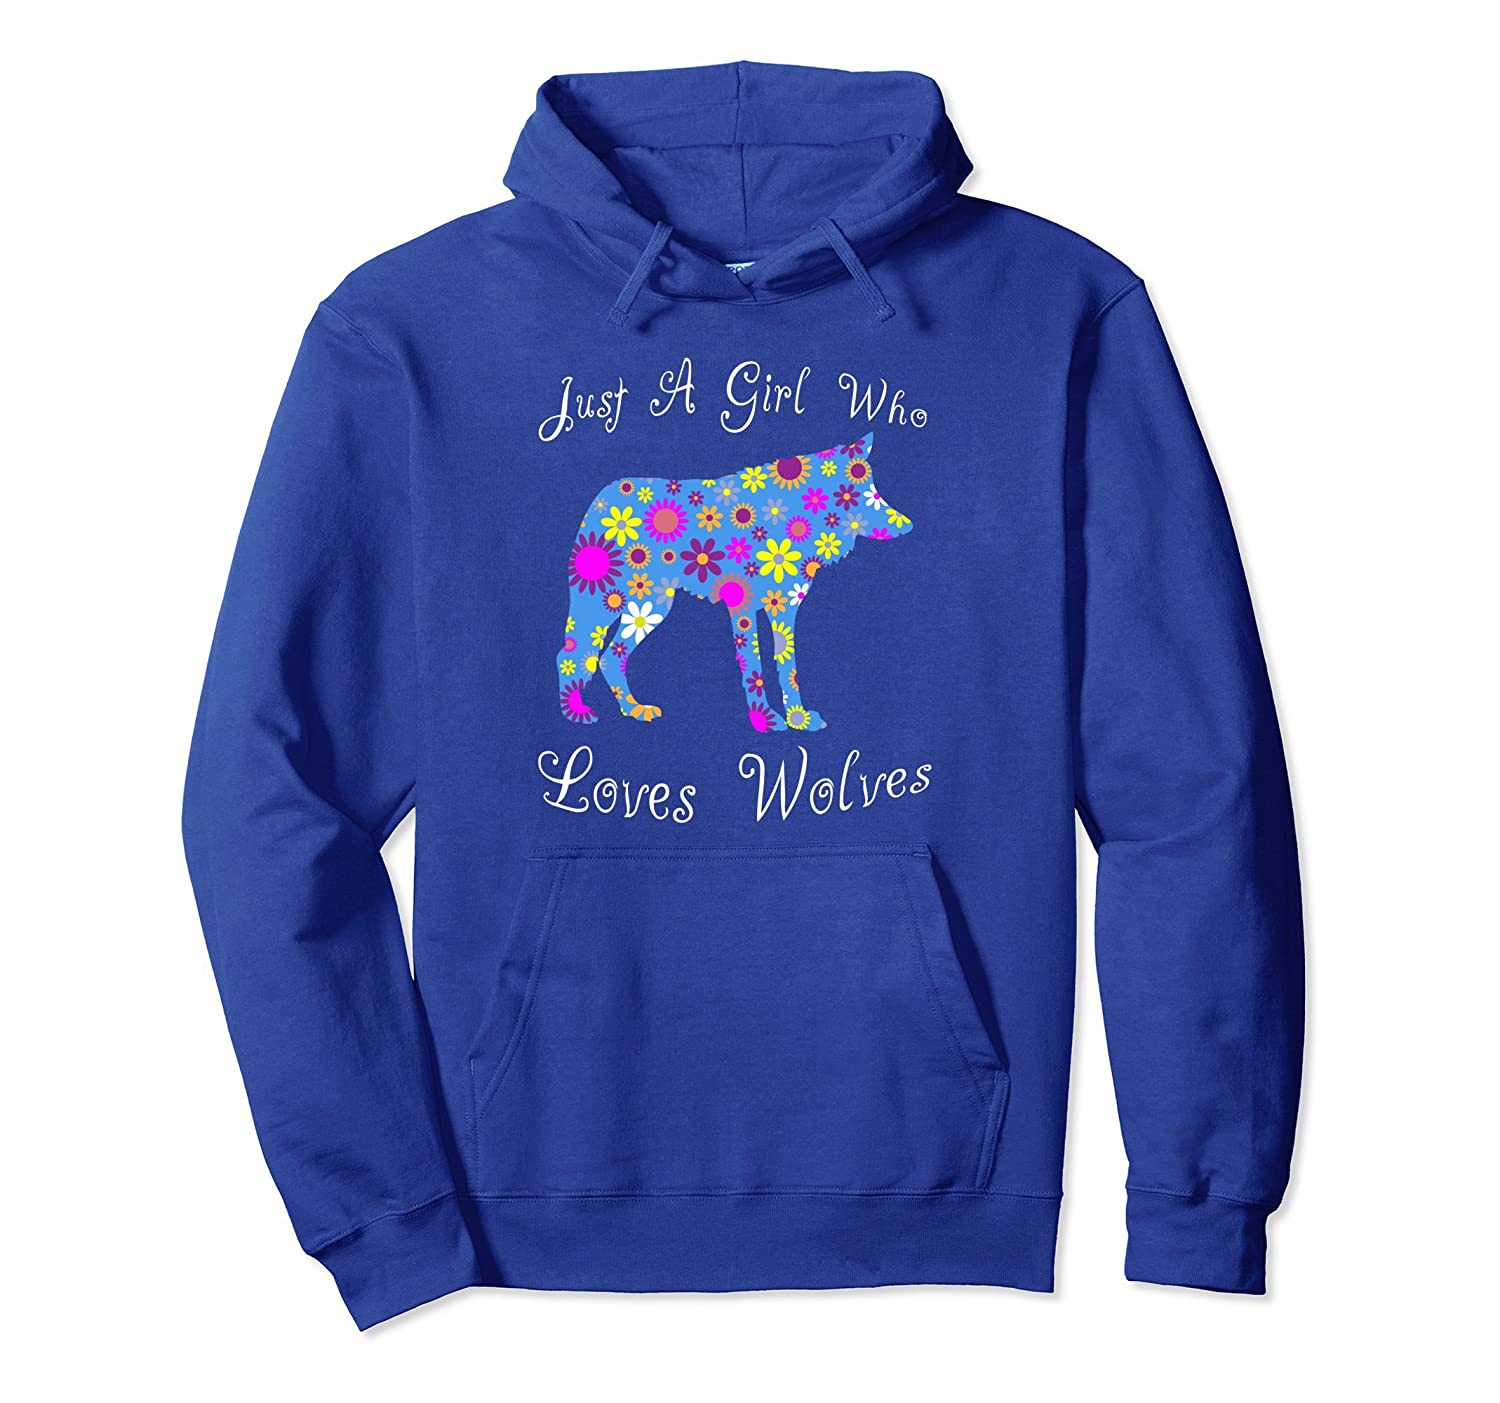 Cute Wolf Hoodie - Floral Design Stylish For Women And Girls-mt